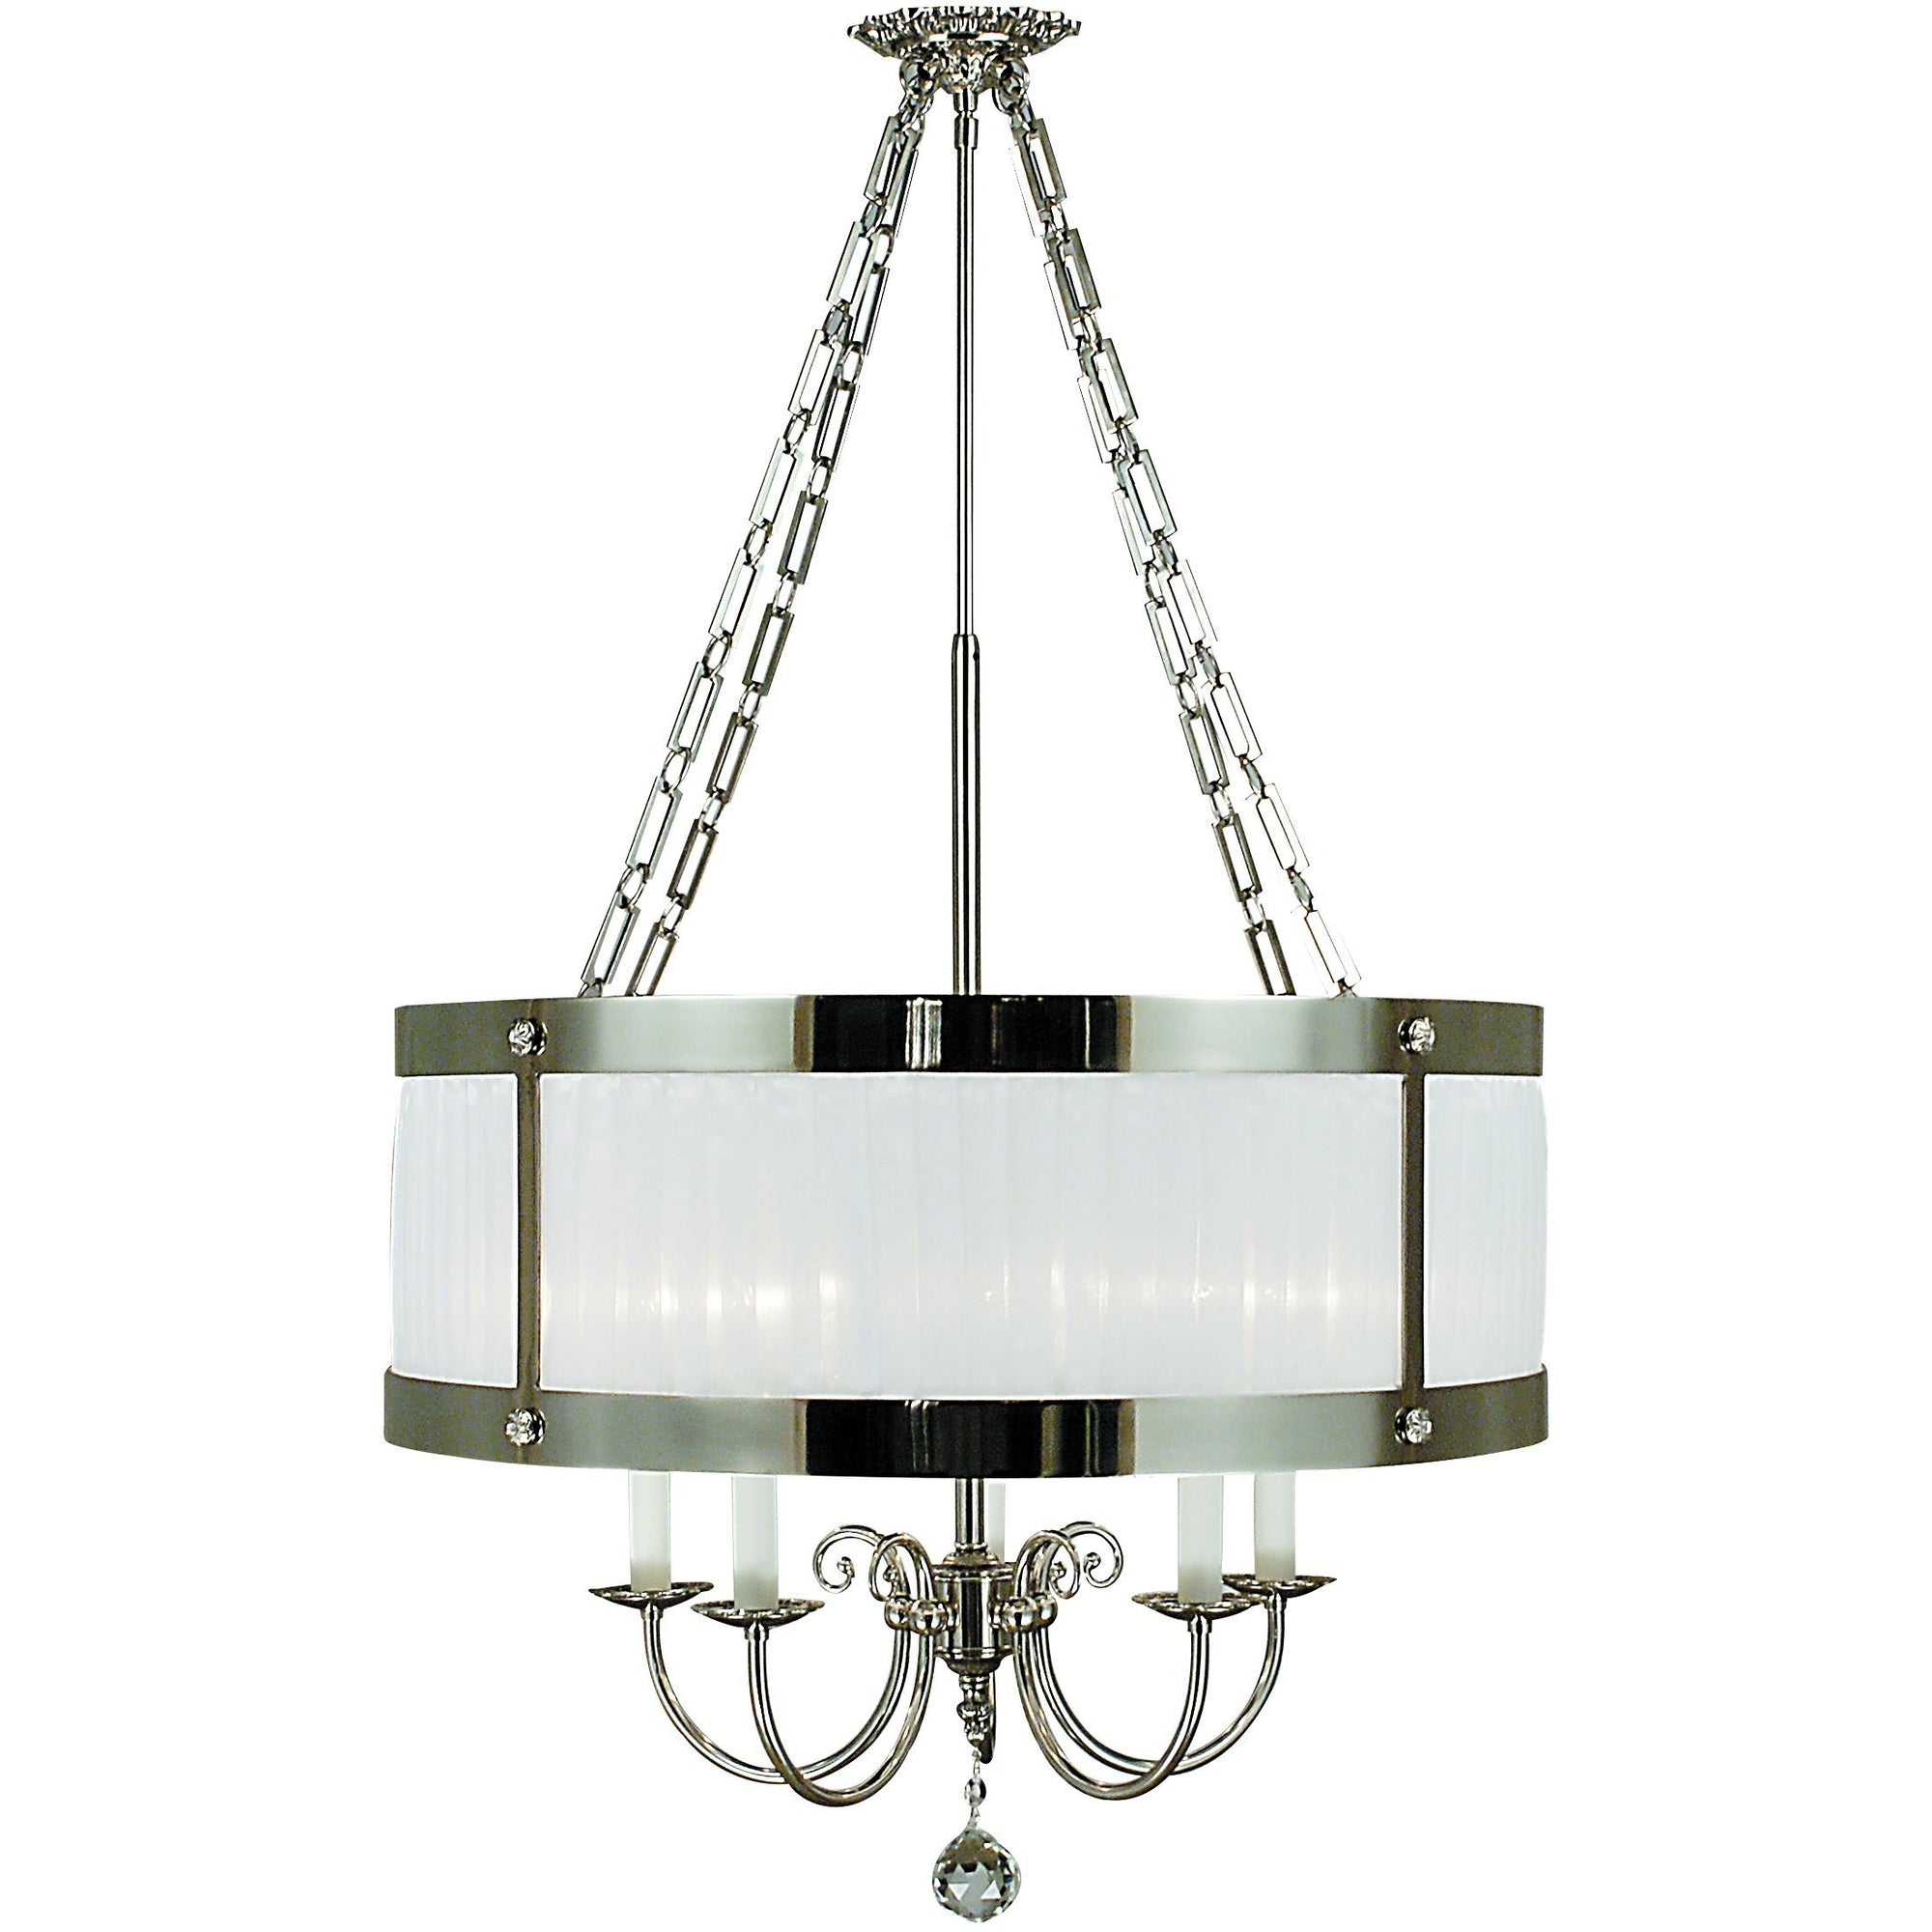 Framburg Chandeliers Polished Silver 5-Light Polished Silver Astor Dining Chandelier by Framburg 2175